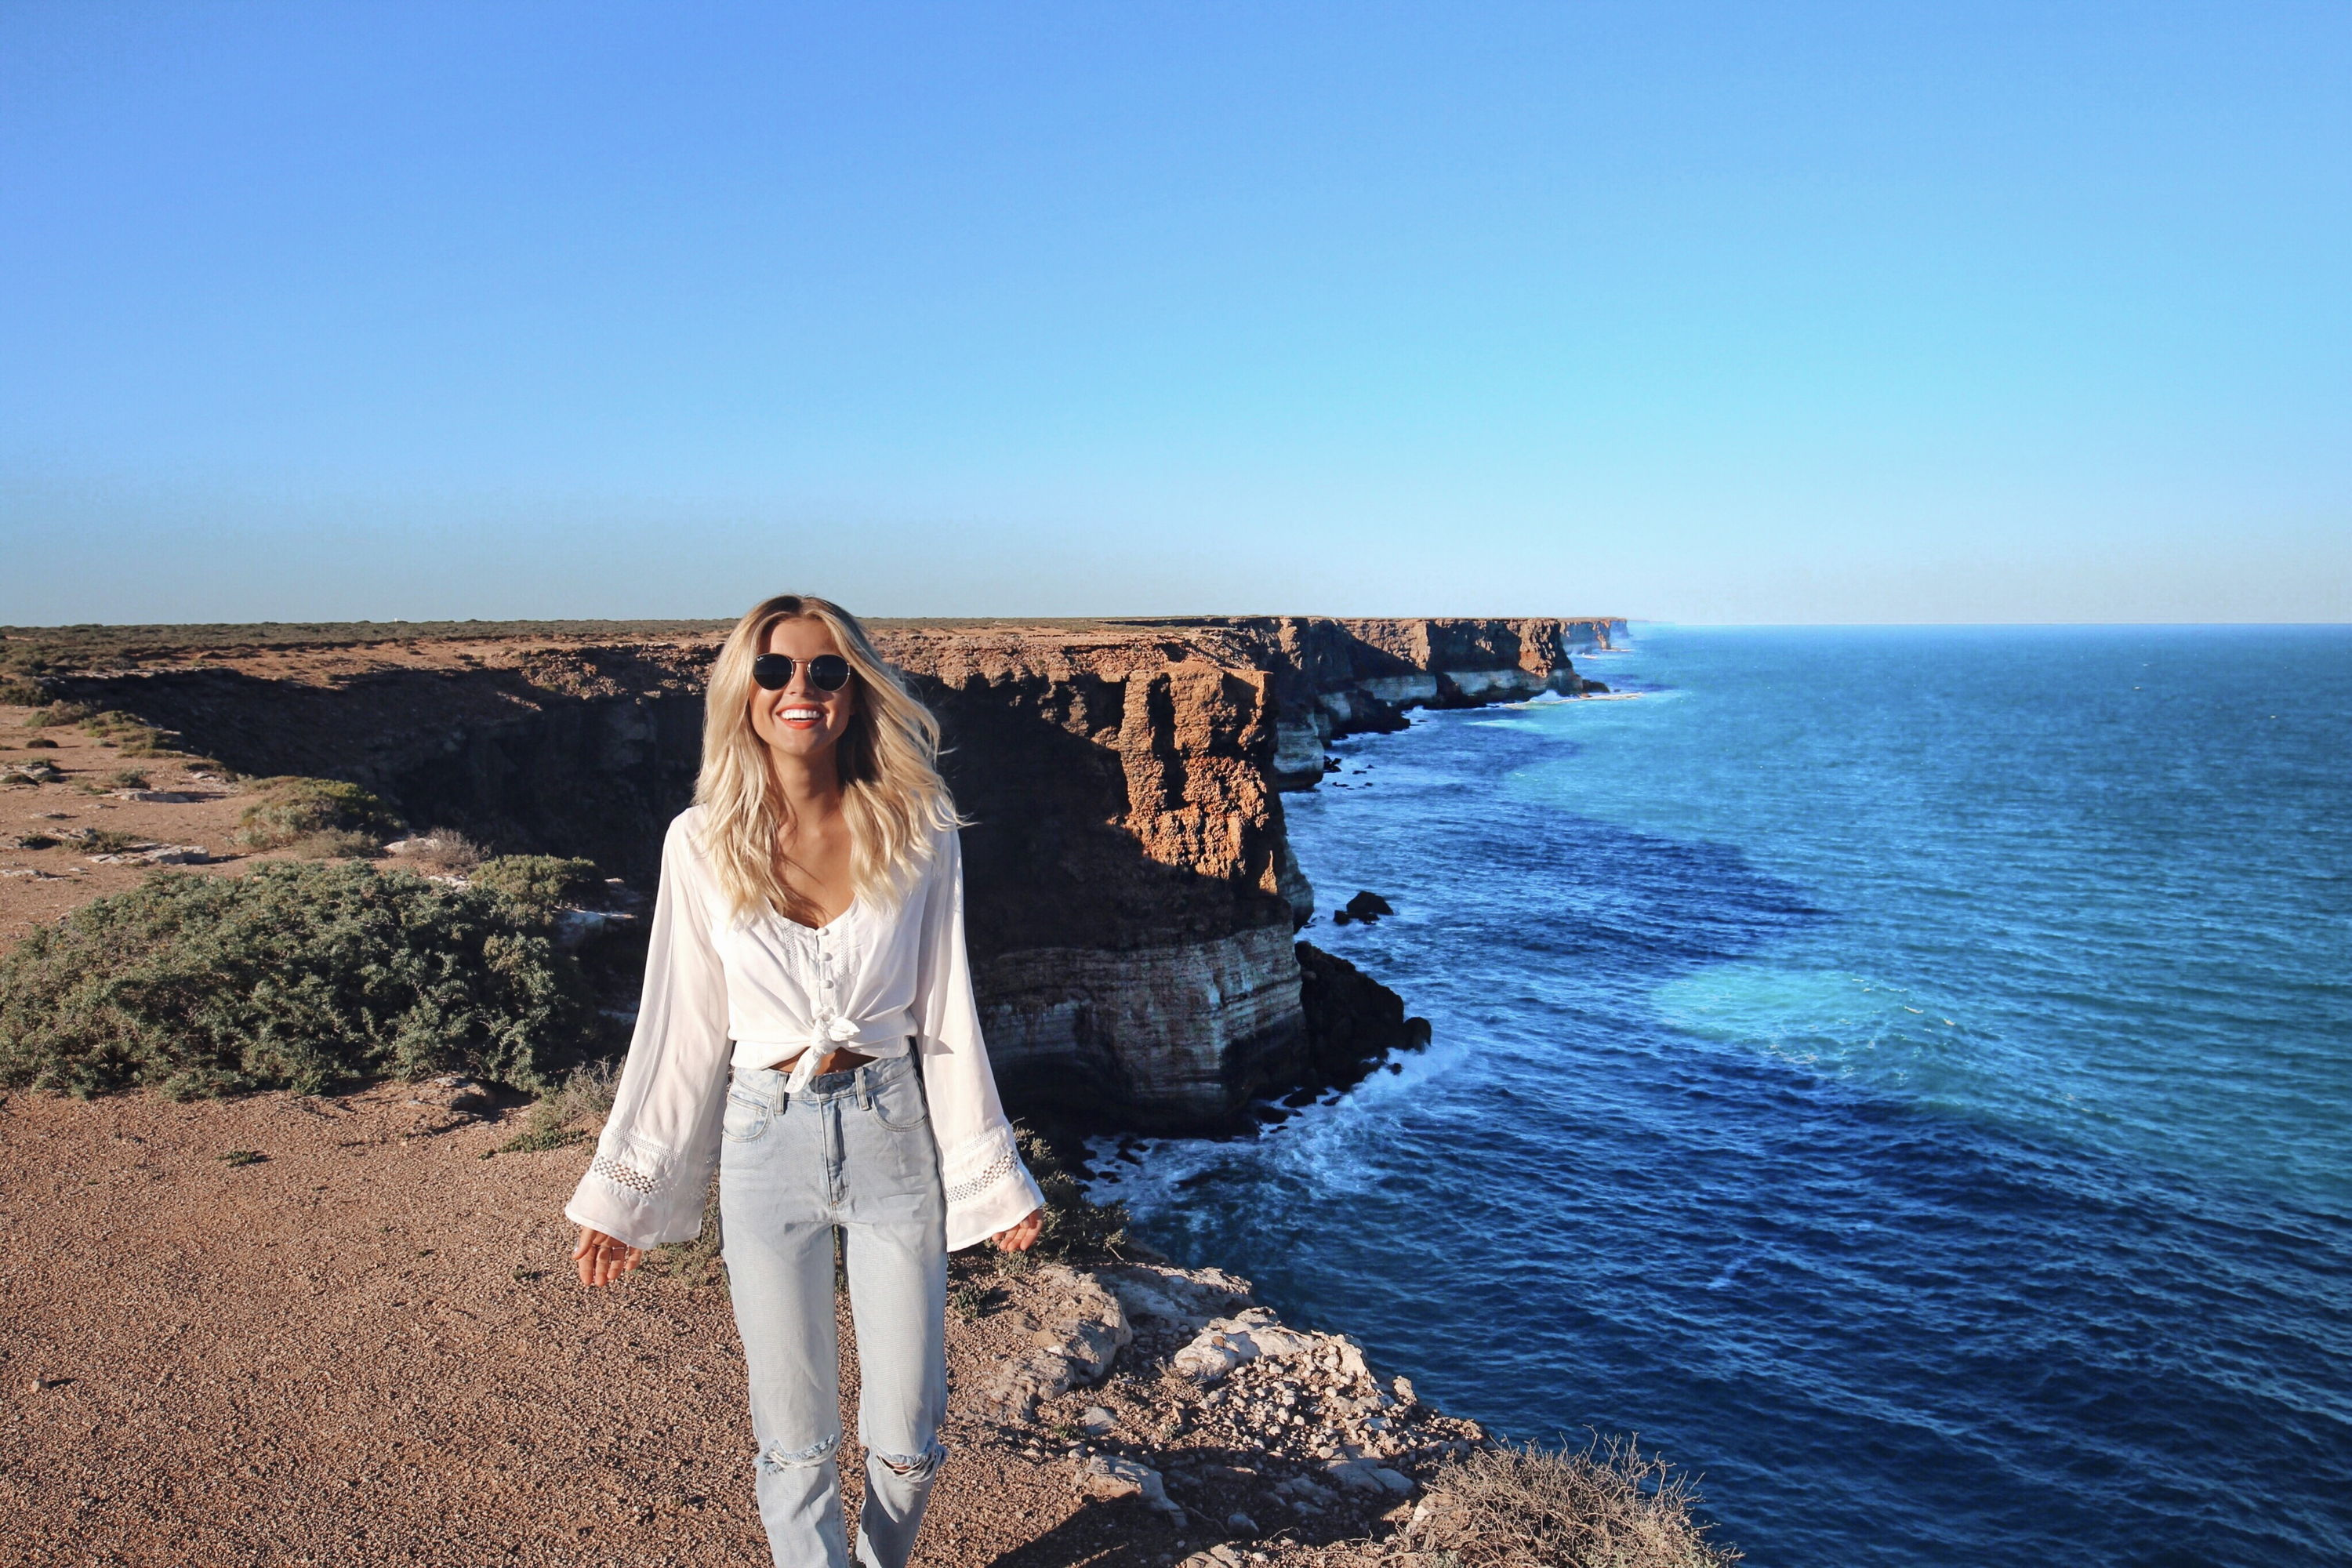 The edge of The Nullarbor - Elise Cook